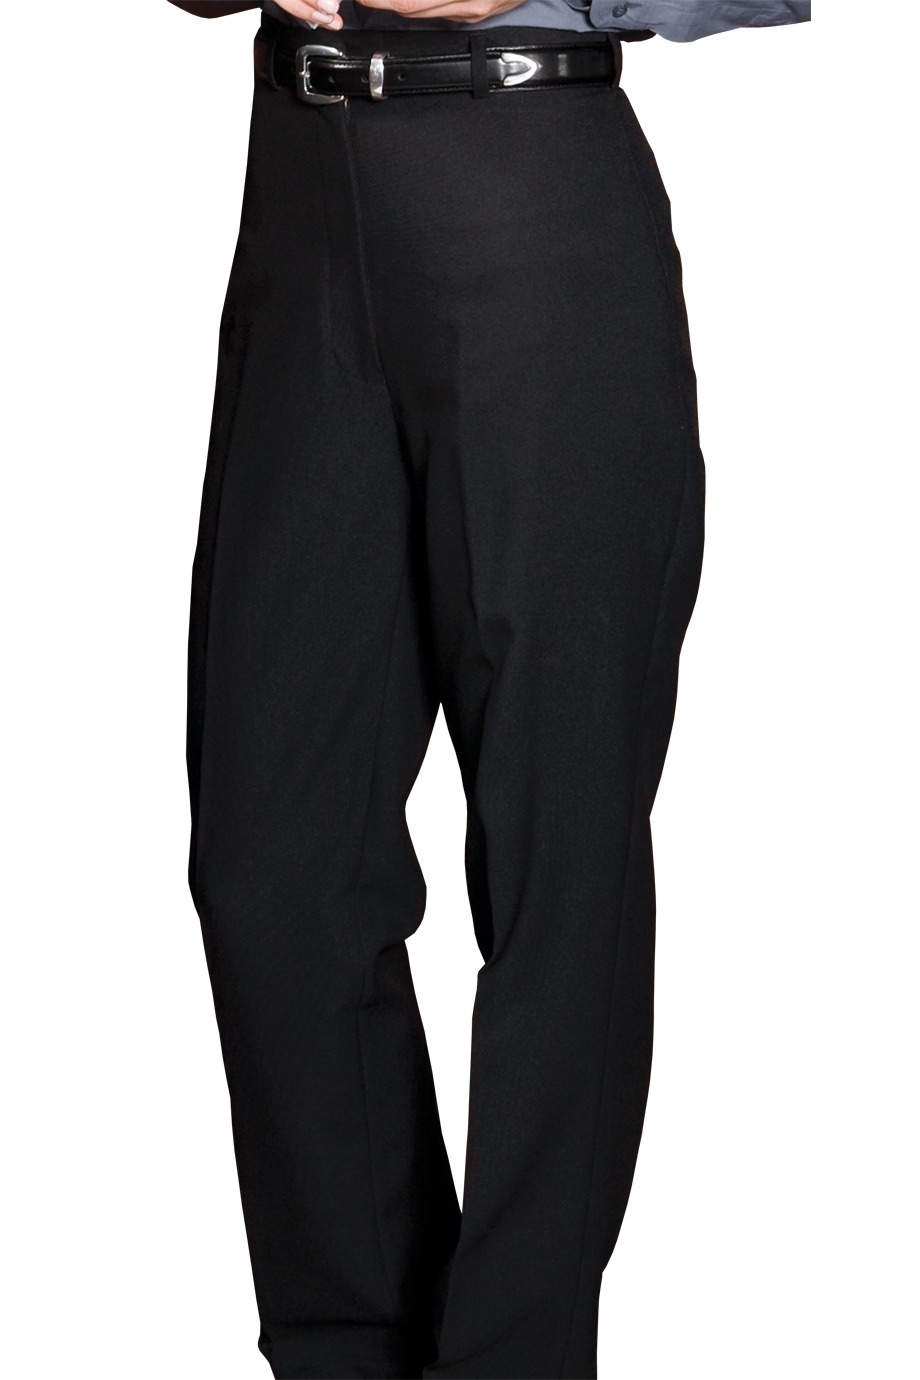 Edwards Garment 8796 - Women's Polyester Casino Flat Front Pant No Pocket